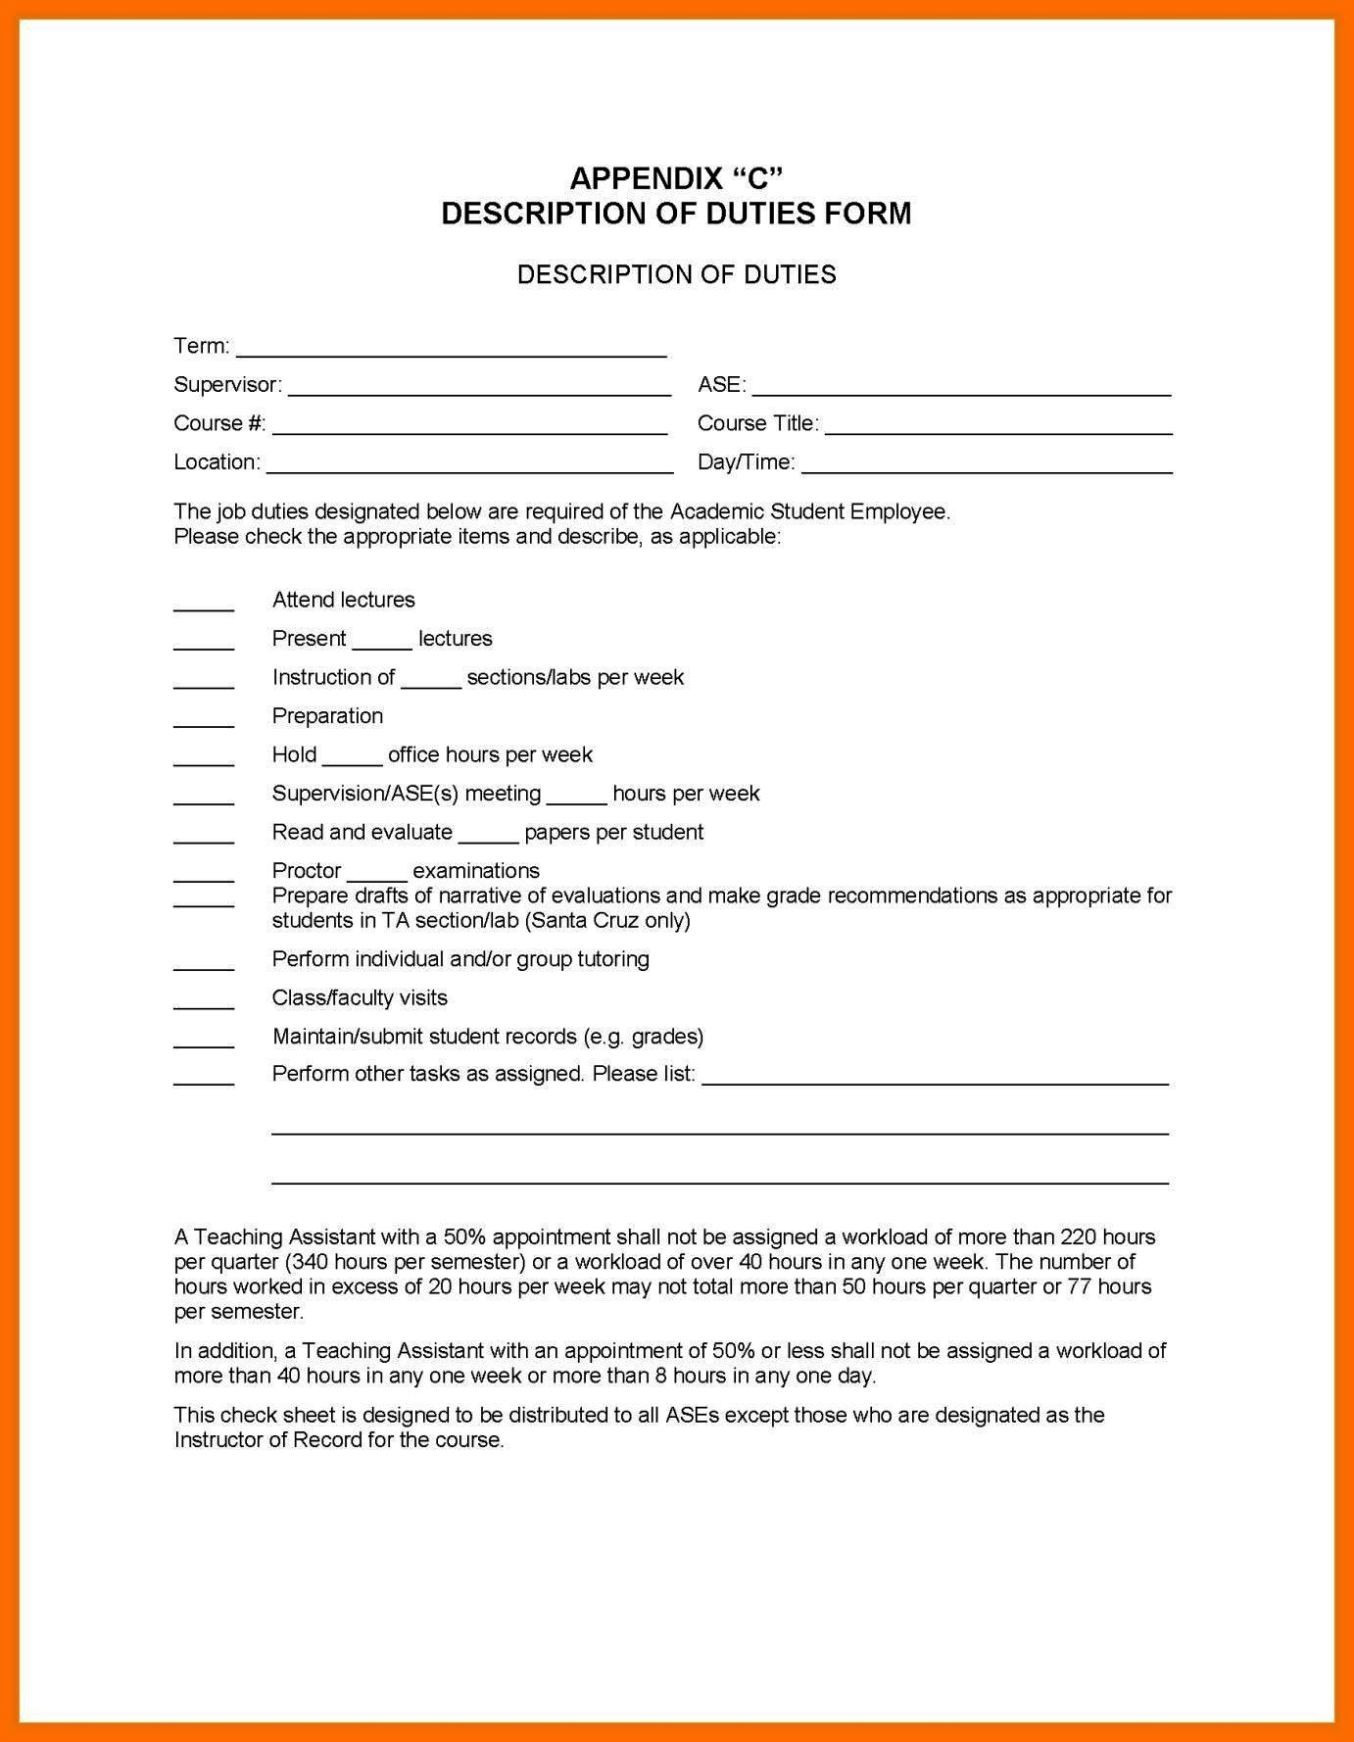 employment contract template  Self Employment Contract Template - SampleTemplatess ..